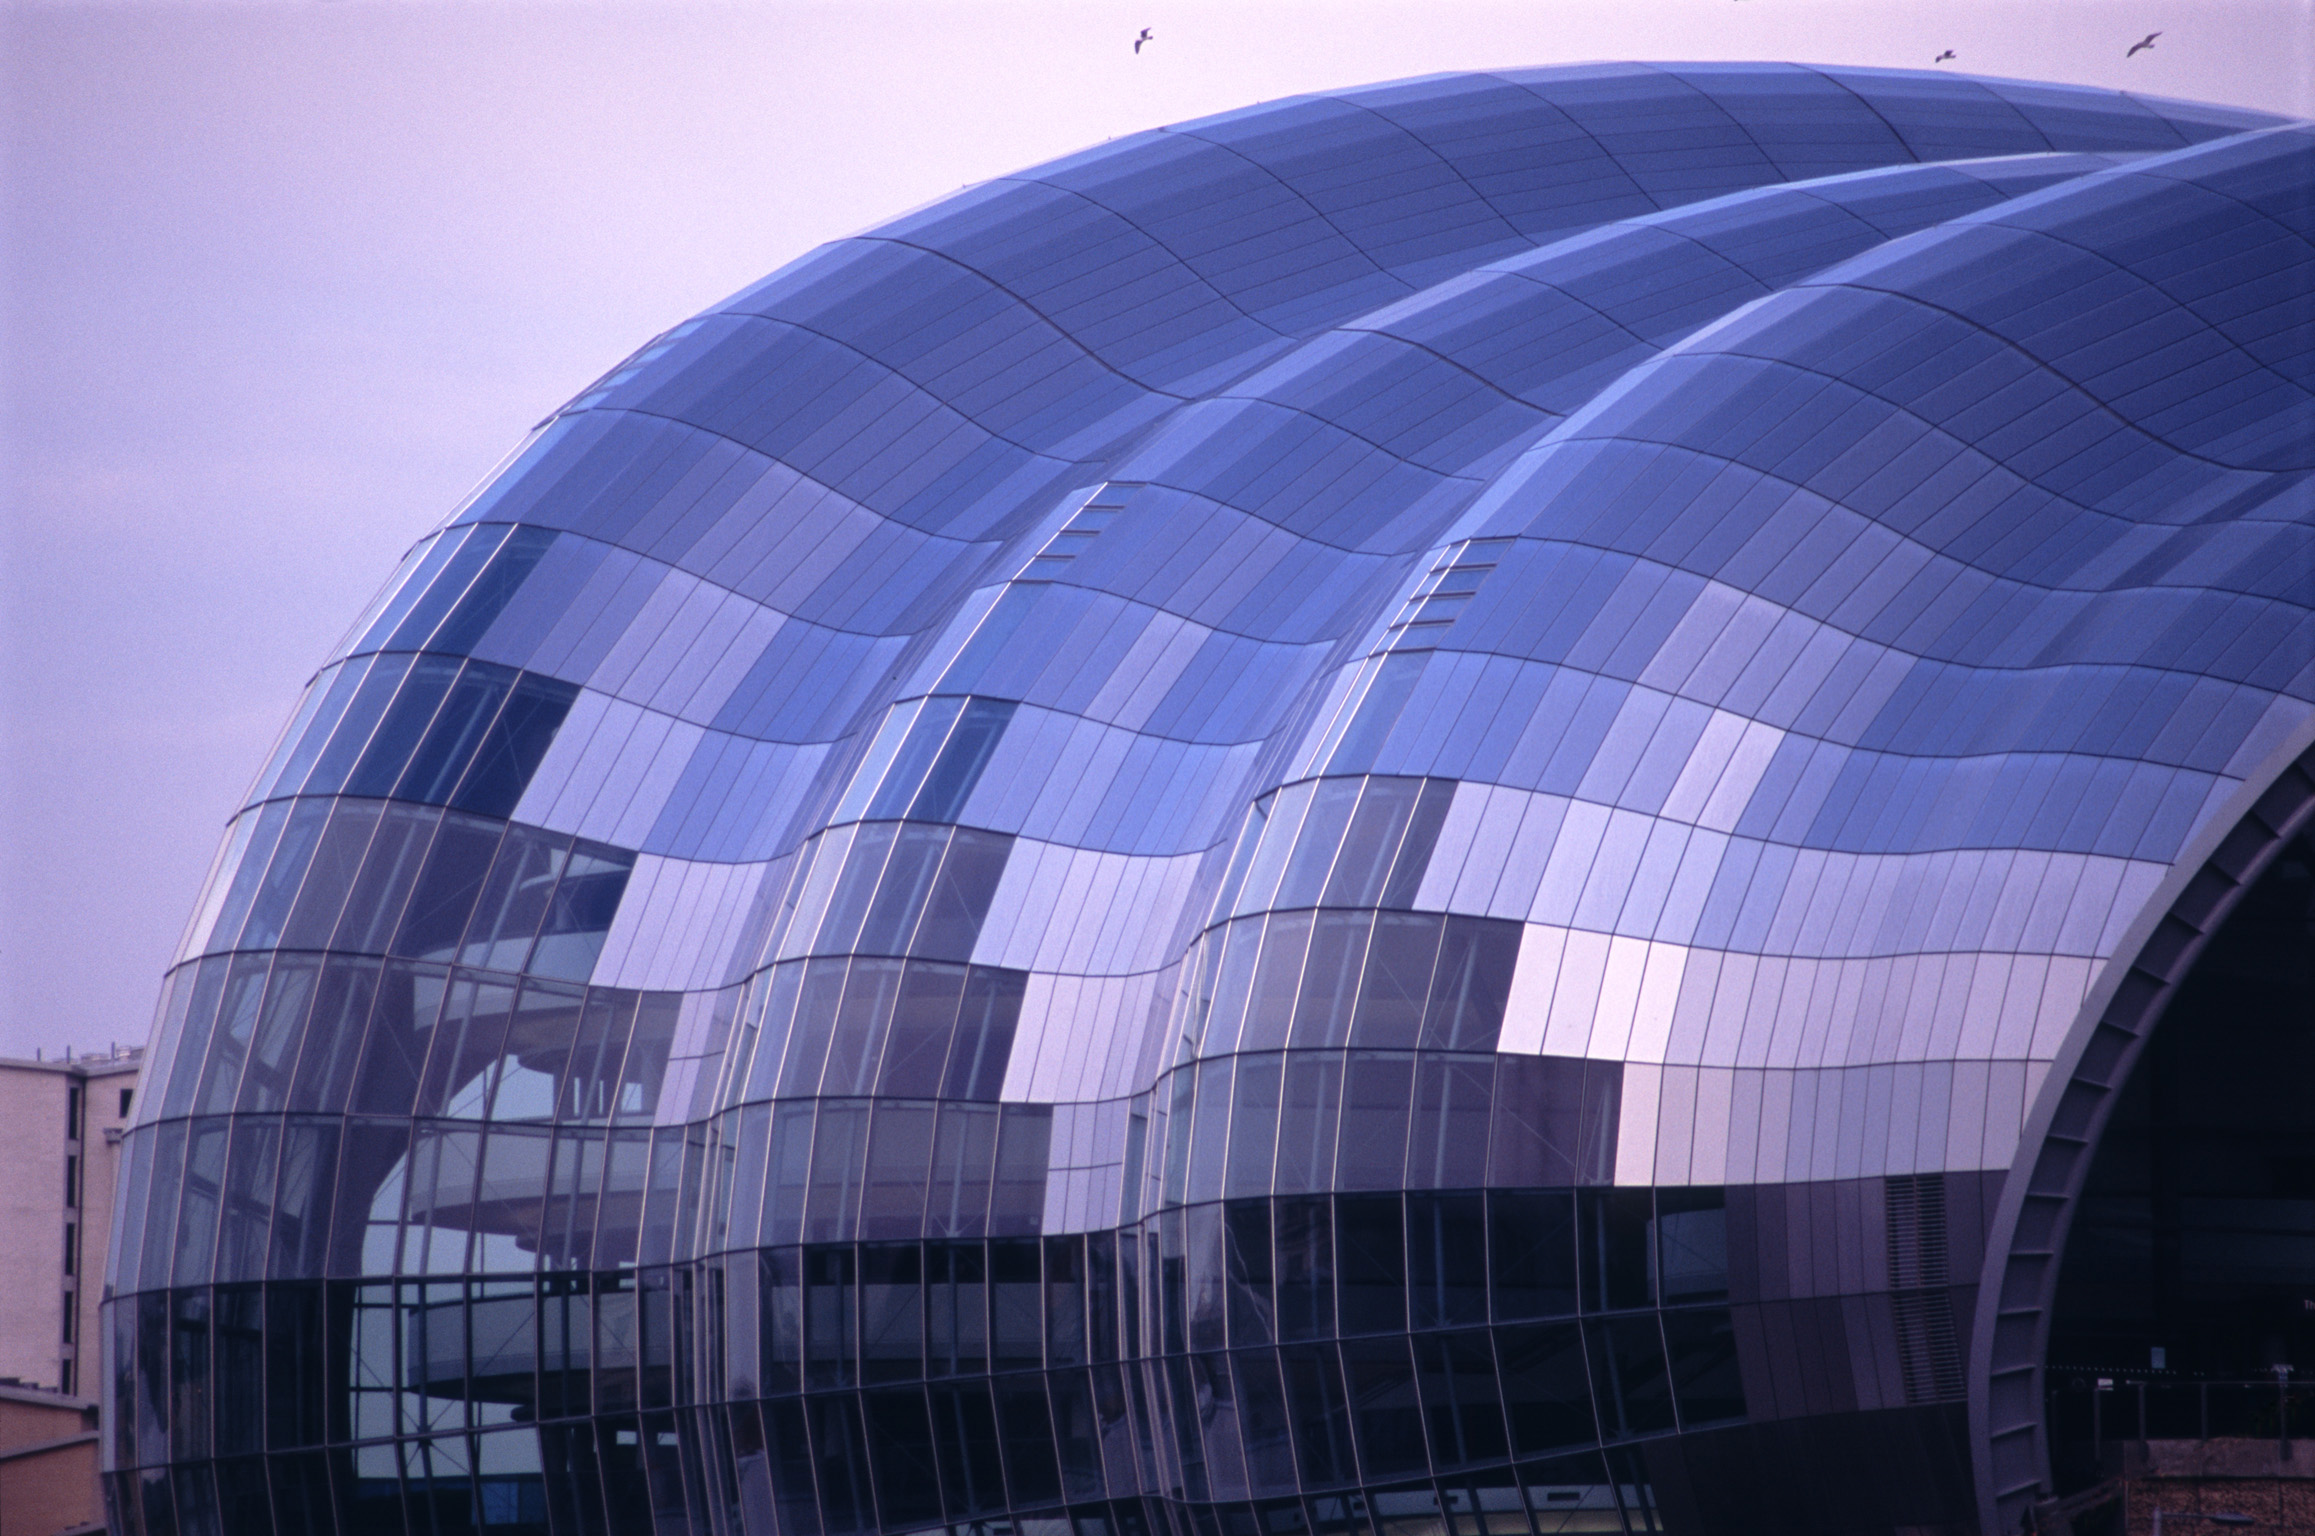 Exterior view of the glass roof covering the sage centre, gateshead